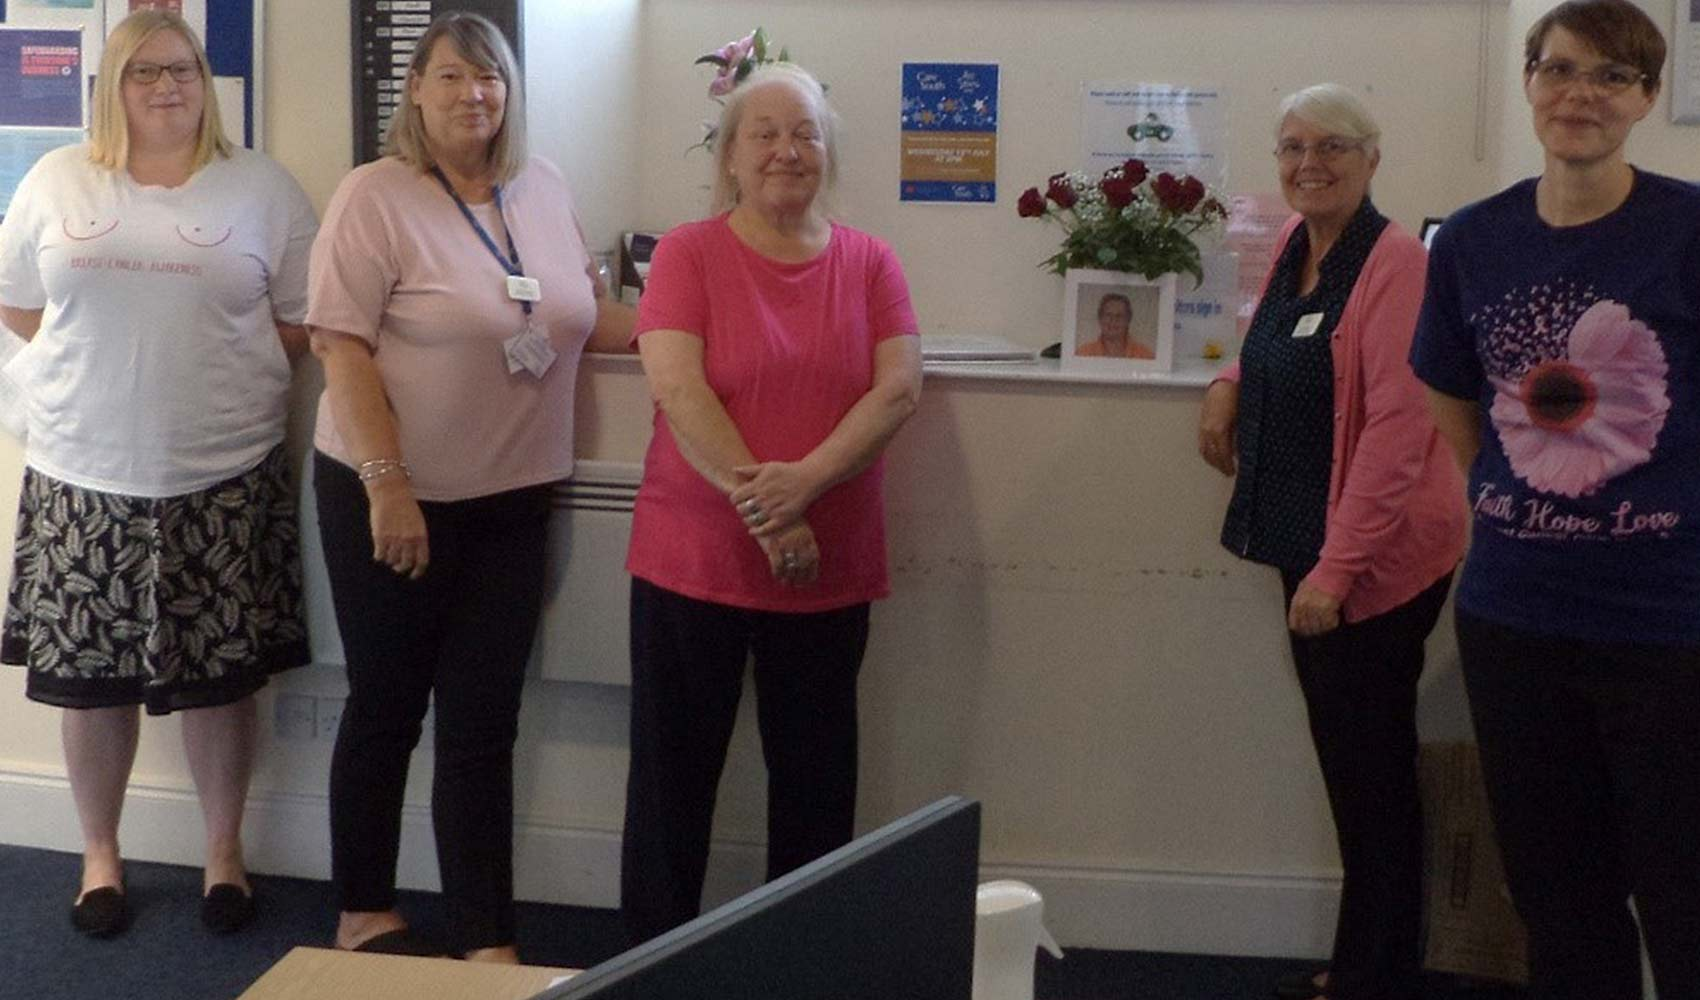 Care at Home teams remember colleague with pink fundraiser